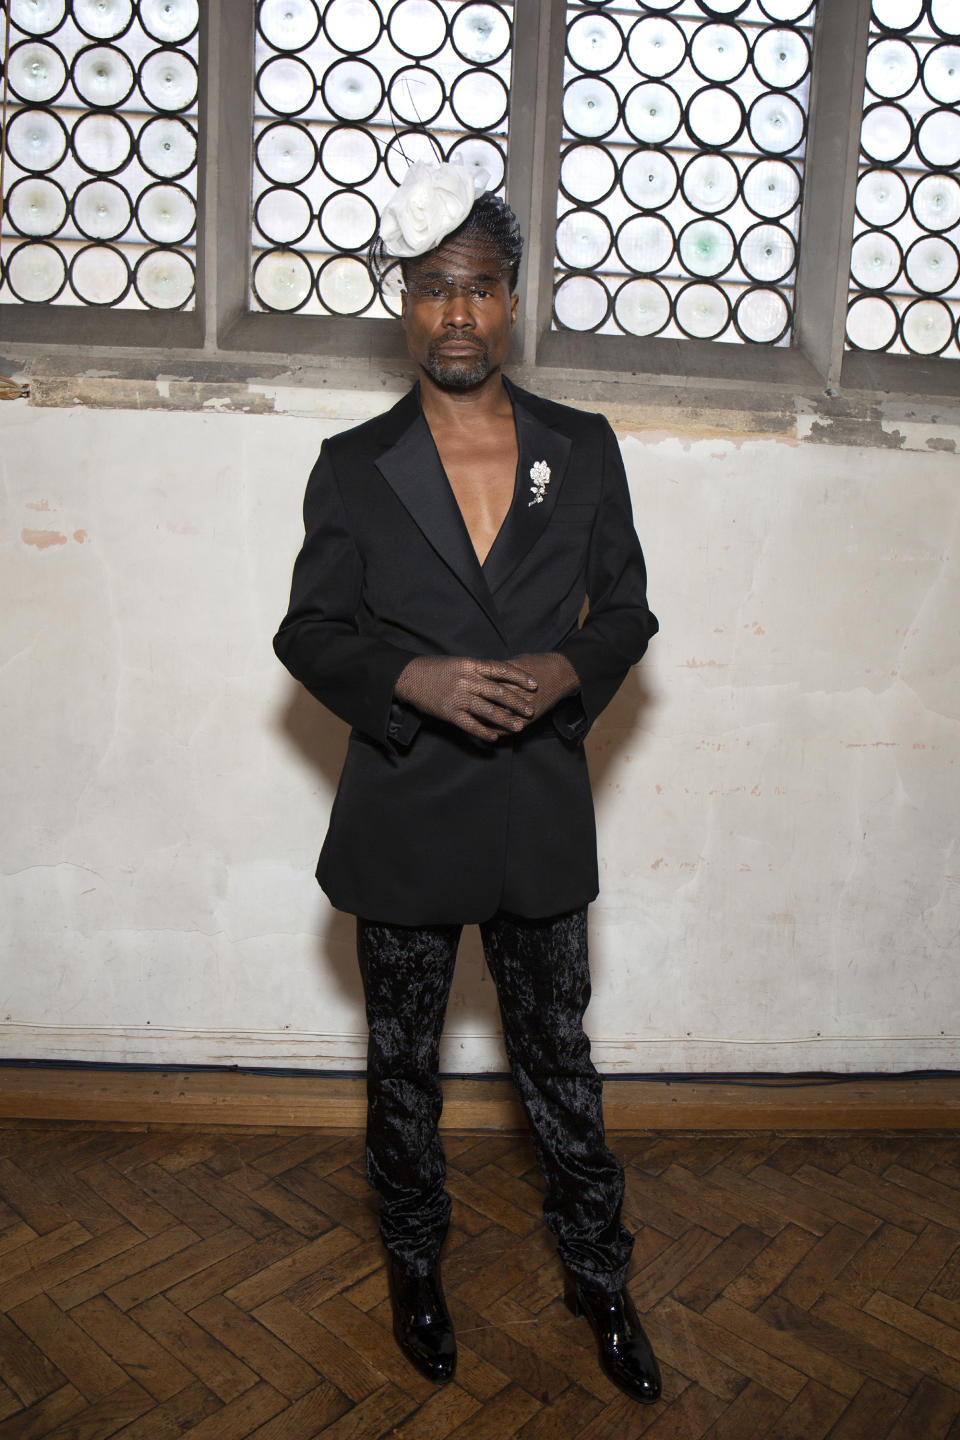 The actor attends the Sharon Wauchob SS20 show wearing a black tailored tuxedo and white fascinator [Photo: Getty Images]